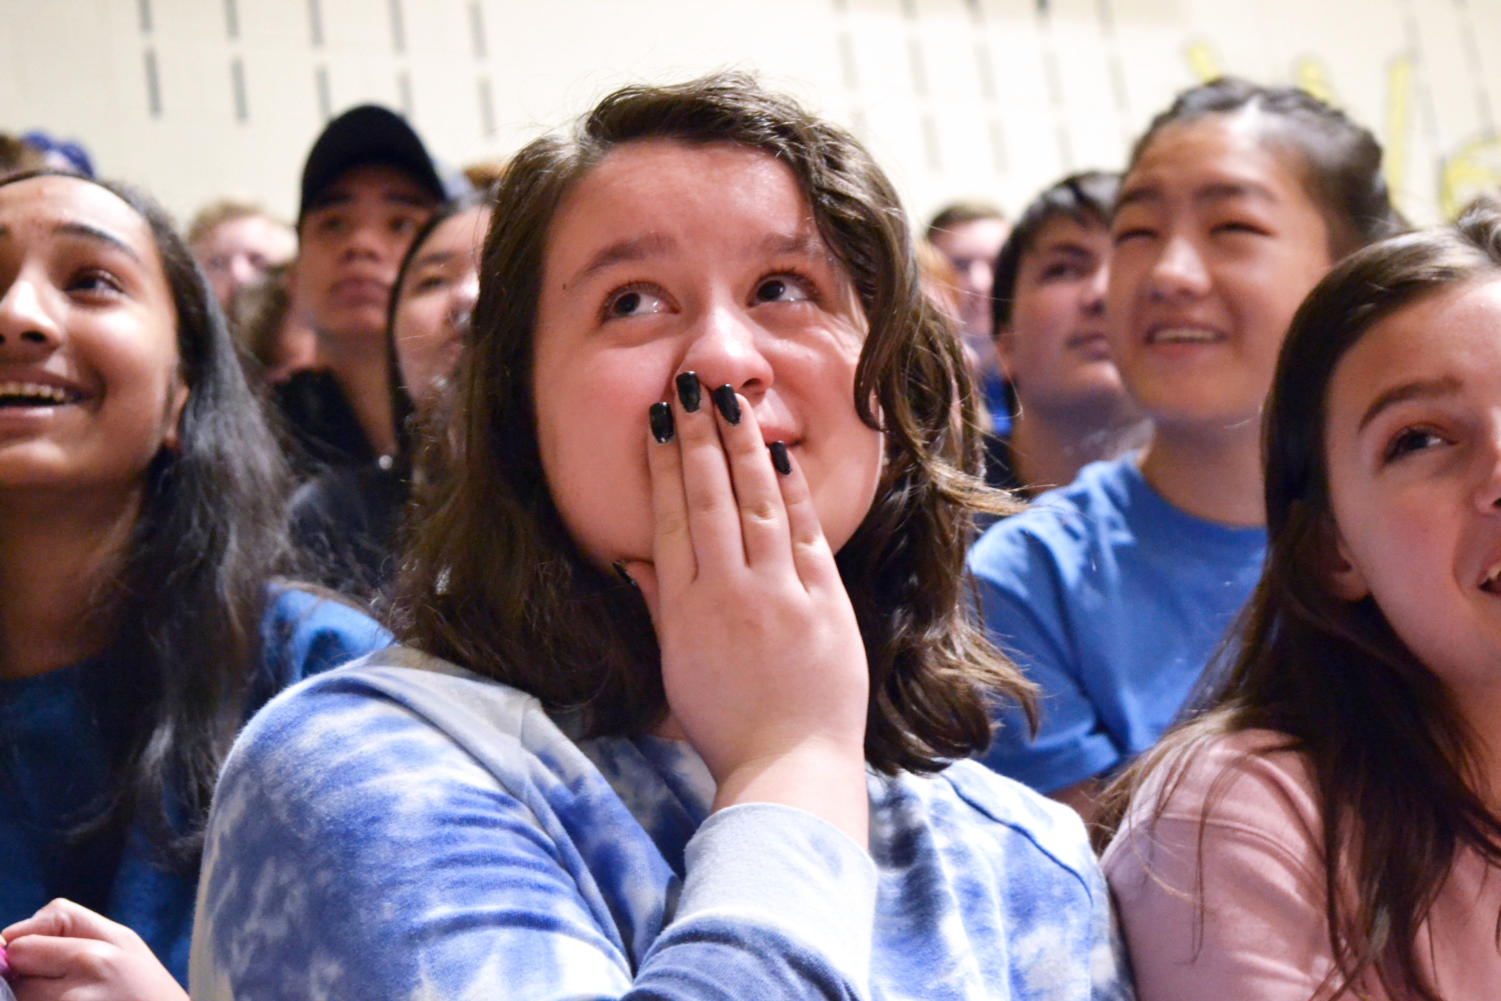 Sara Smith '21 cries while watching the introductory video introducing last year's wish kid, Violet March 1, 2018.